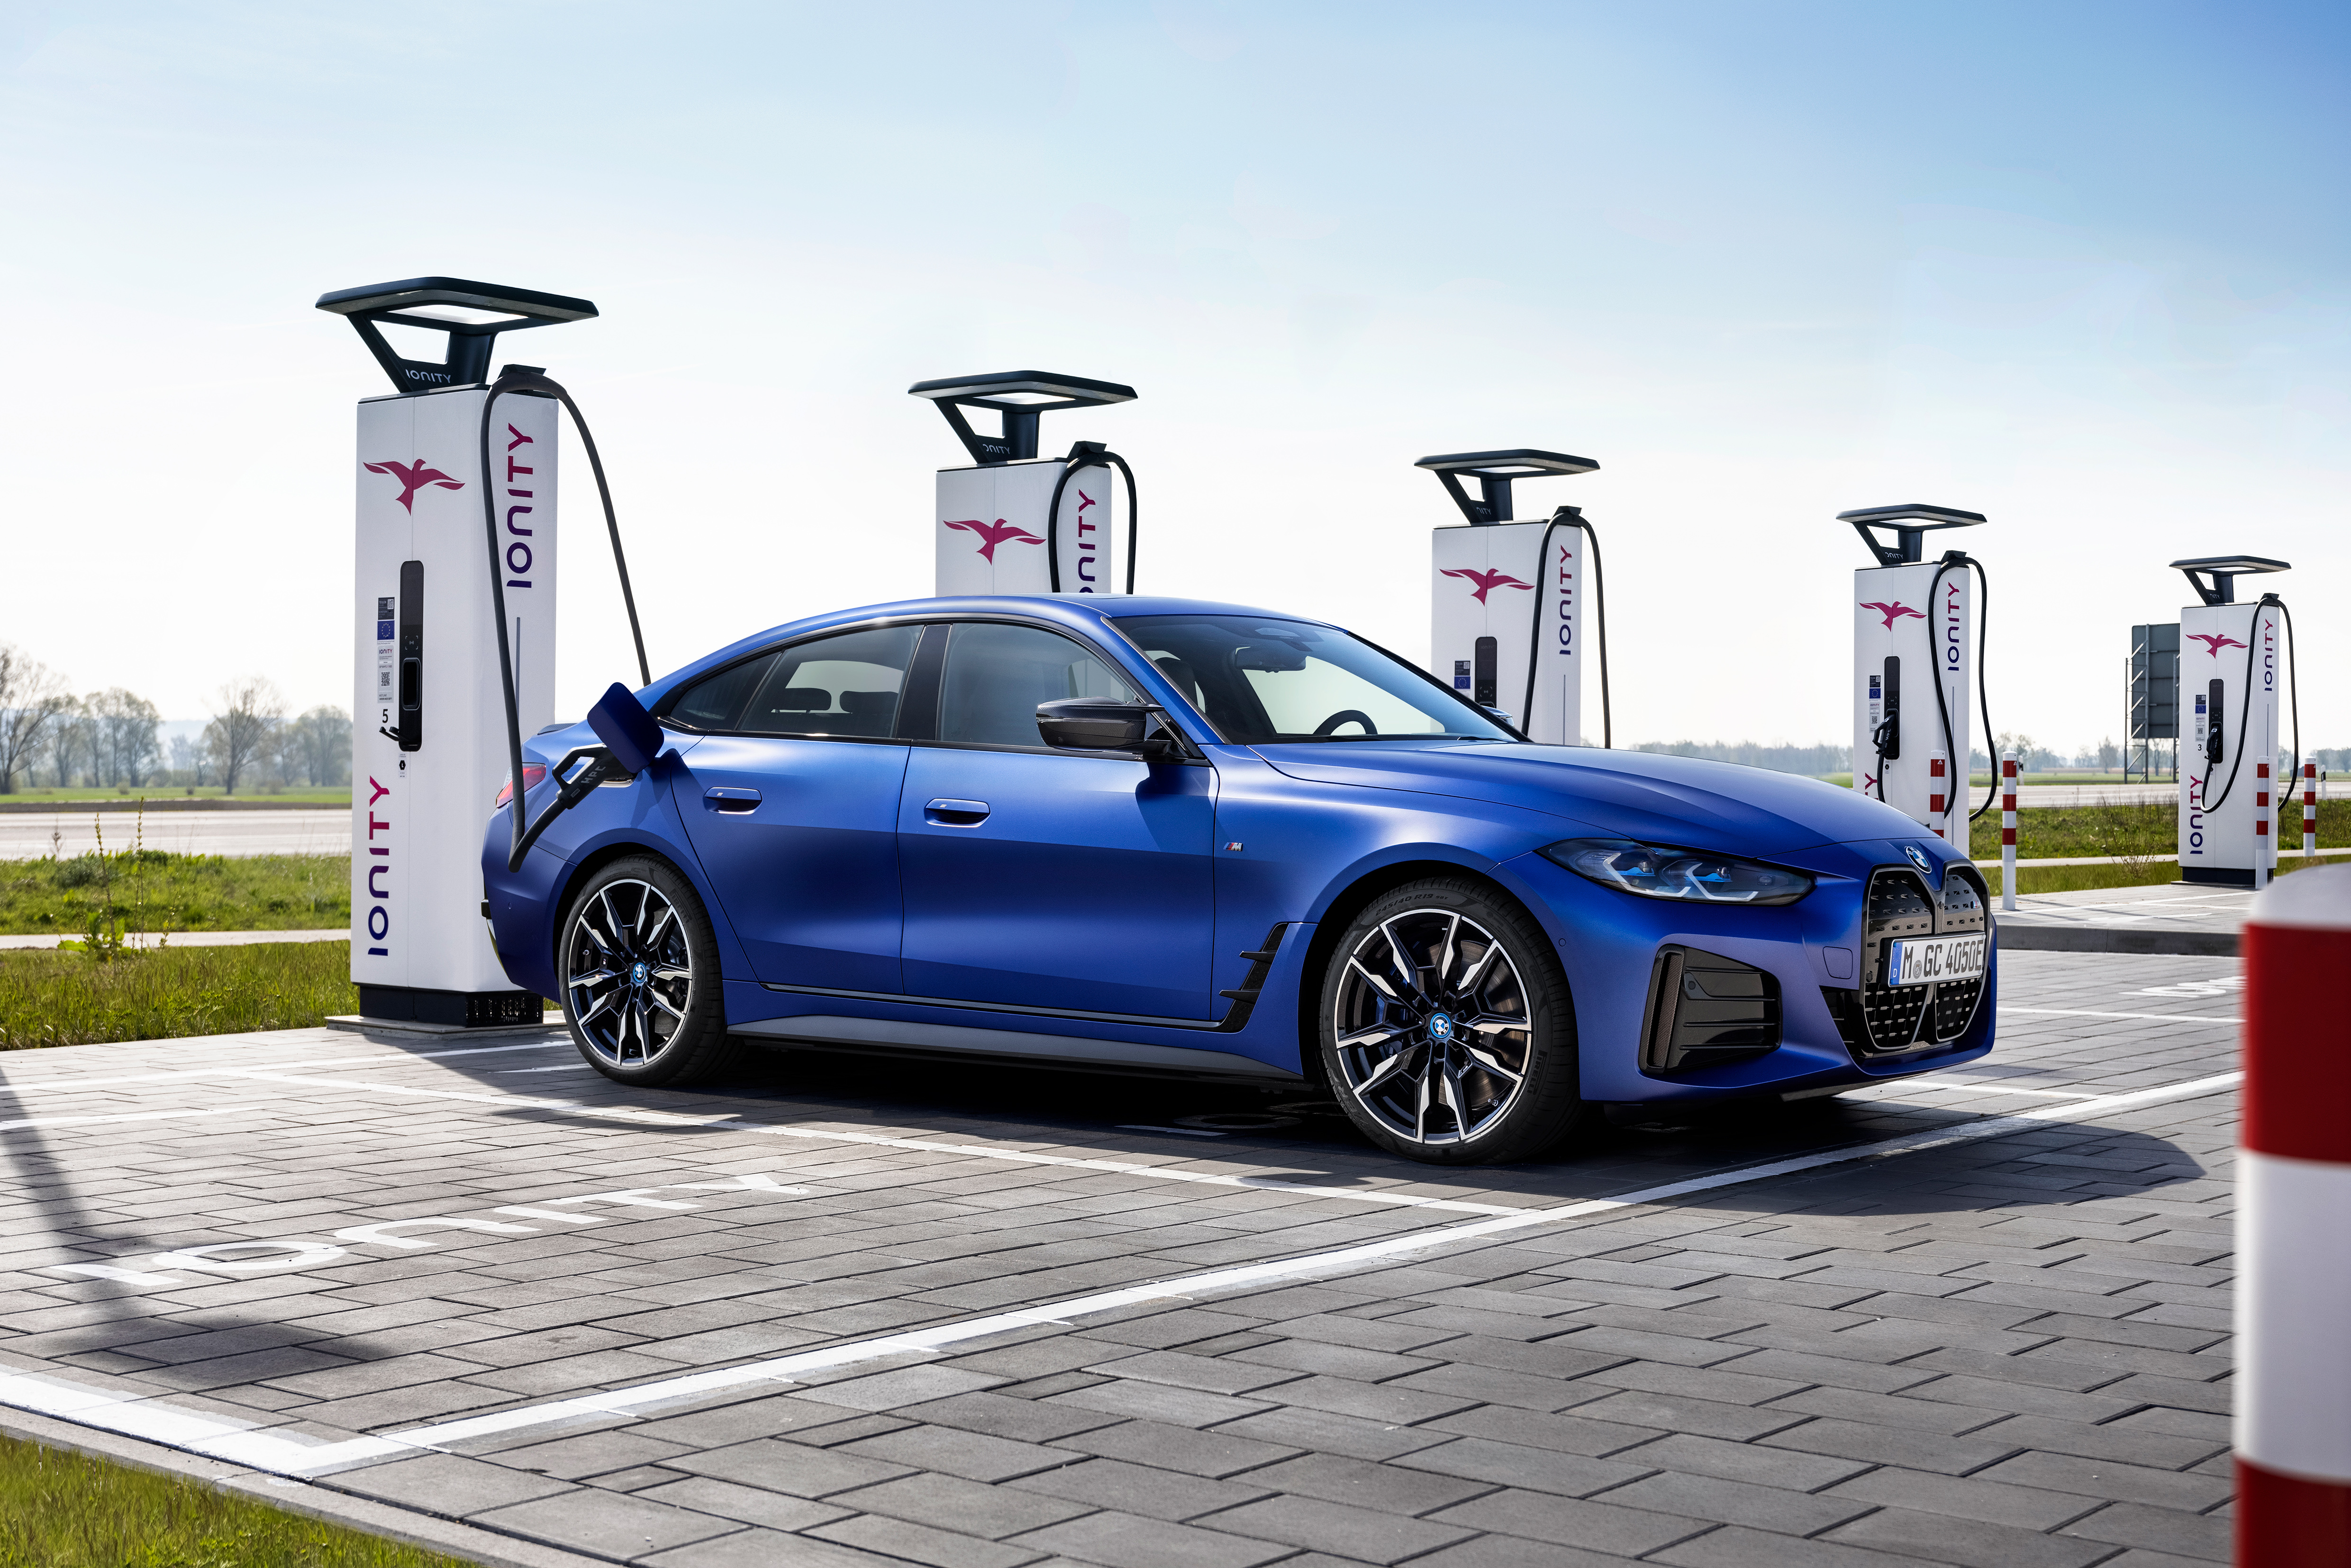 A 200 kW DC fast charger will take an i4's battery from 10 to 80 percent state of charge in 31 minutes. An AC slow charge from 10 to 100 percent will take a little less than eight hours.